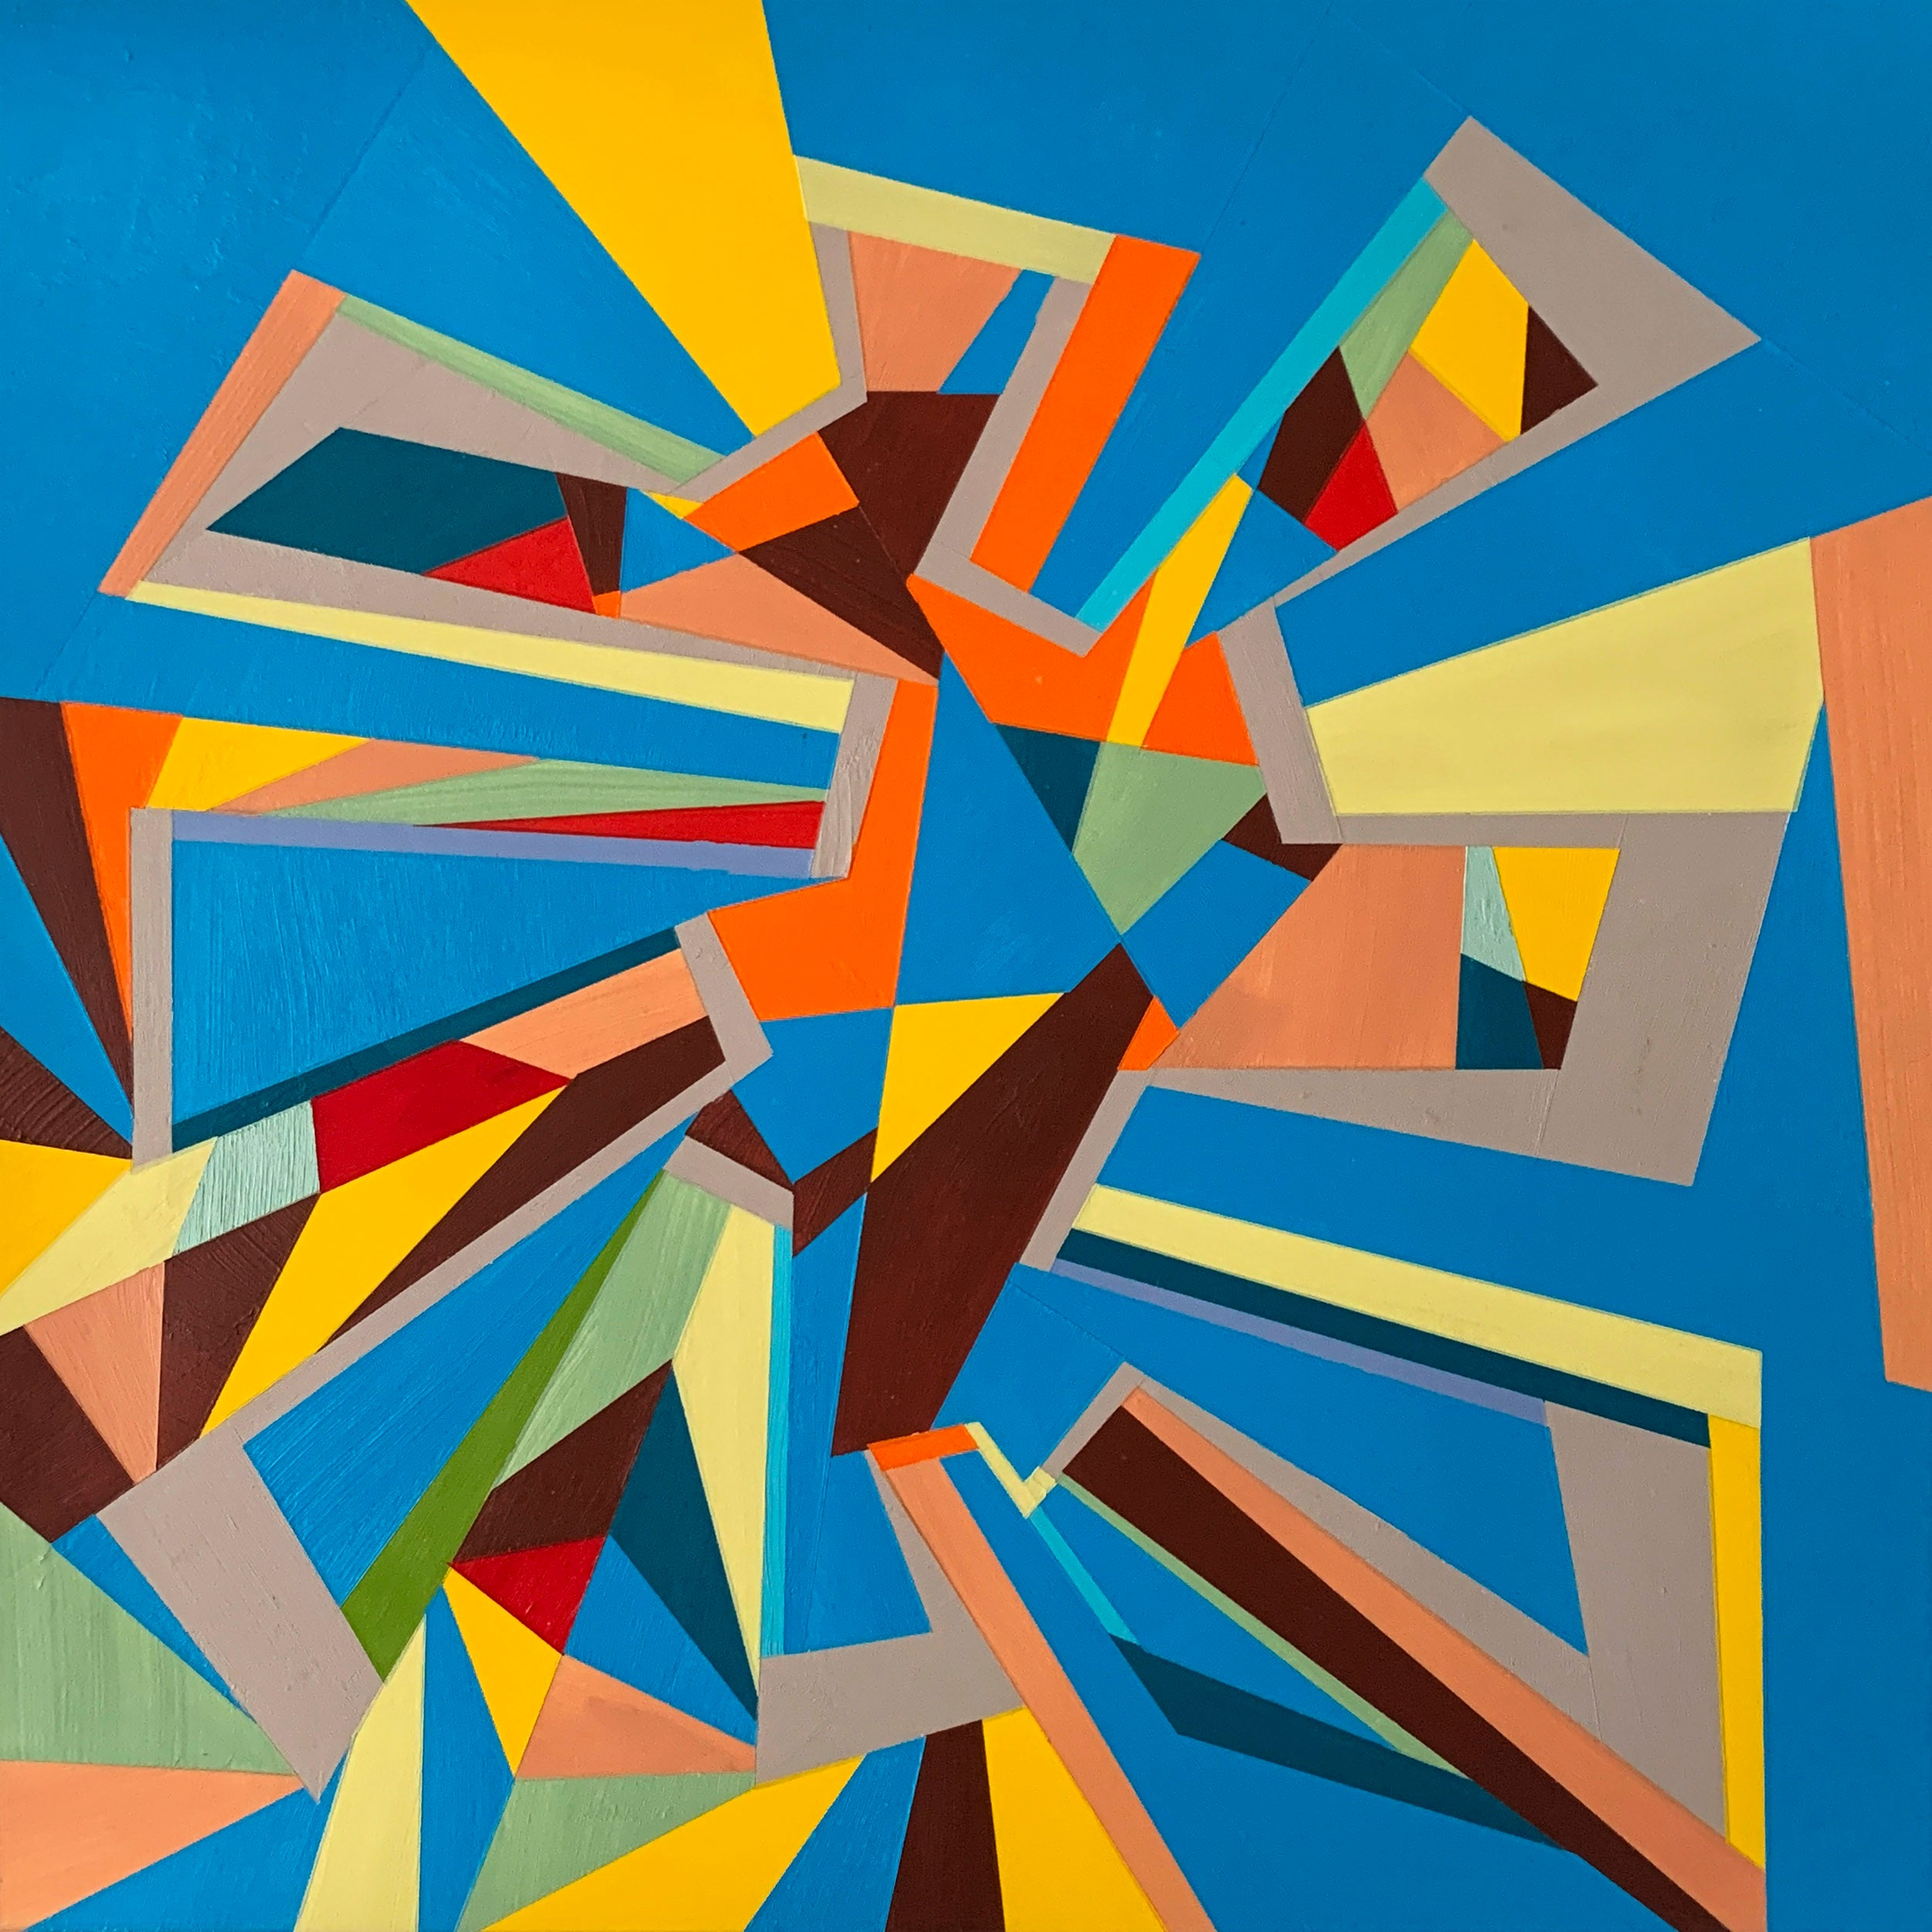 """Painting 1, 4/4/2020"" by Mark Feeney. Shapes and bright colors on blue background.."